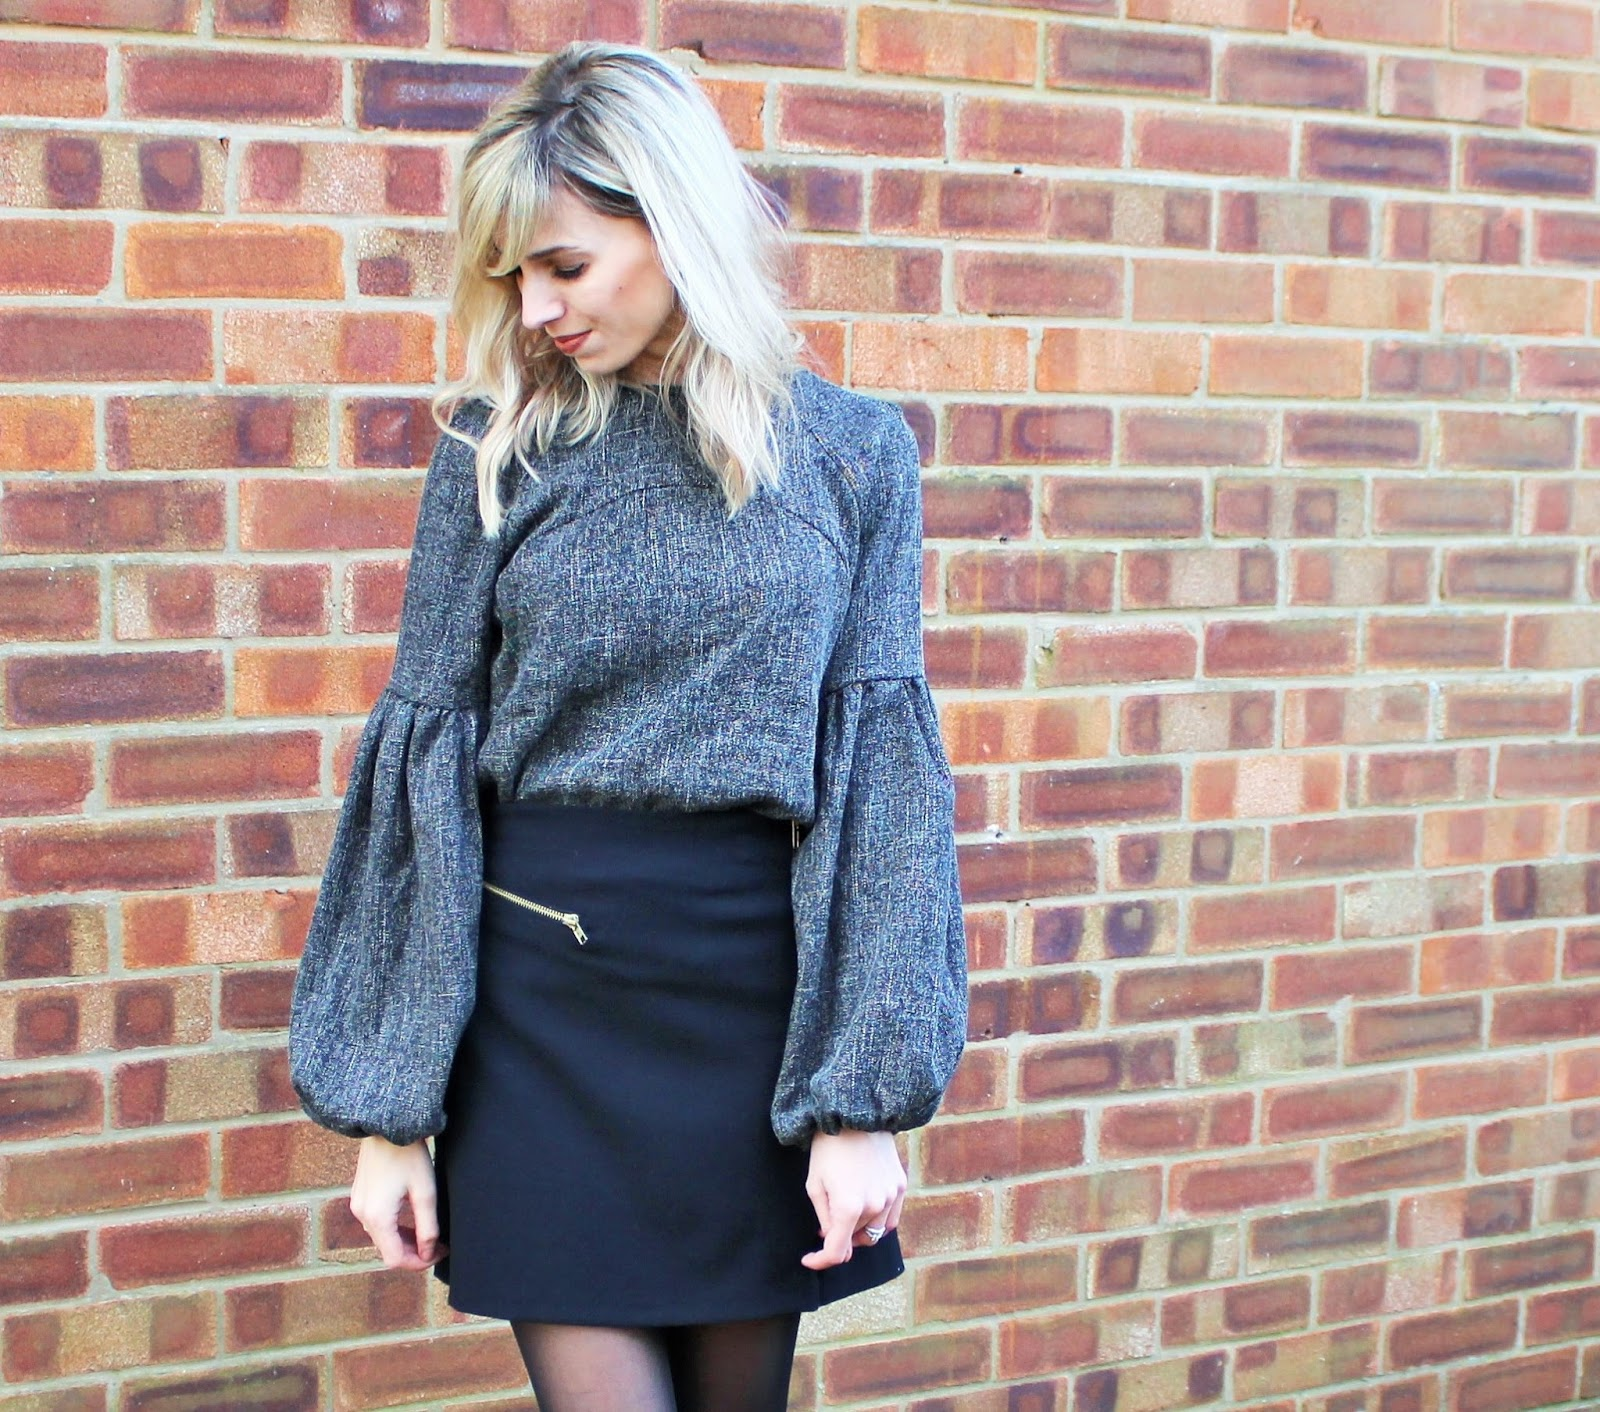 OOTD featuring Shein Balloon Sleeve Top, Topshop Mini Skirt and Zara Ankle Boots - 4